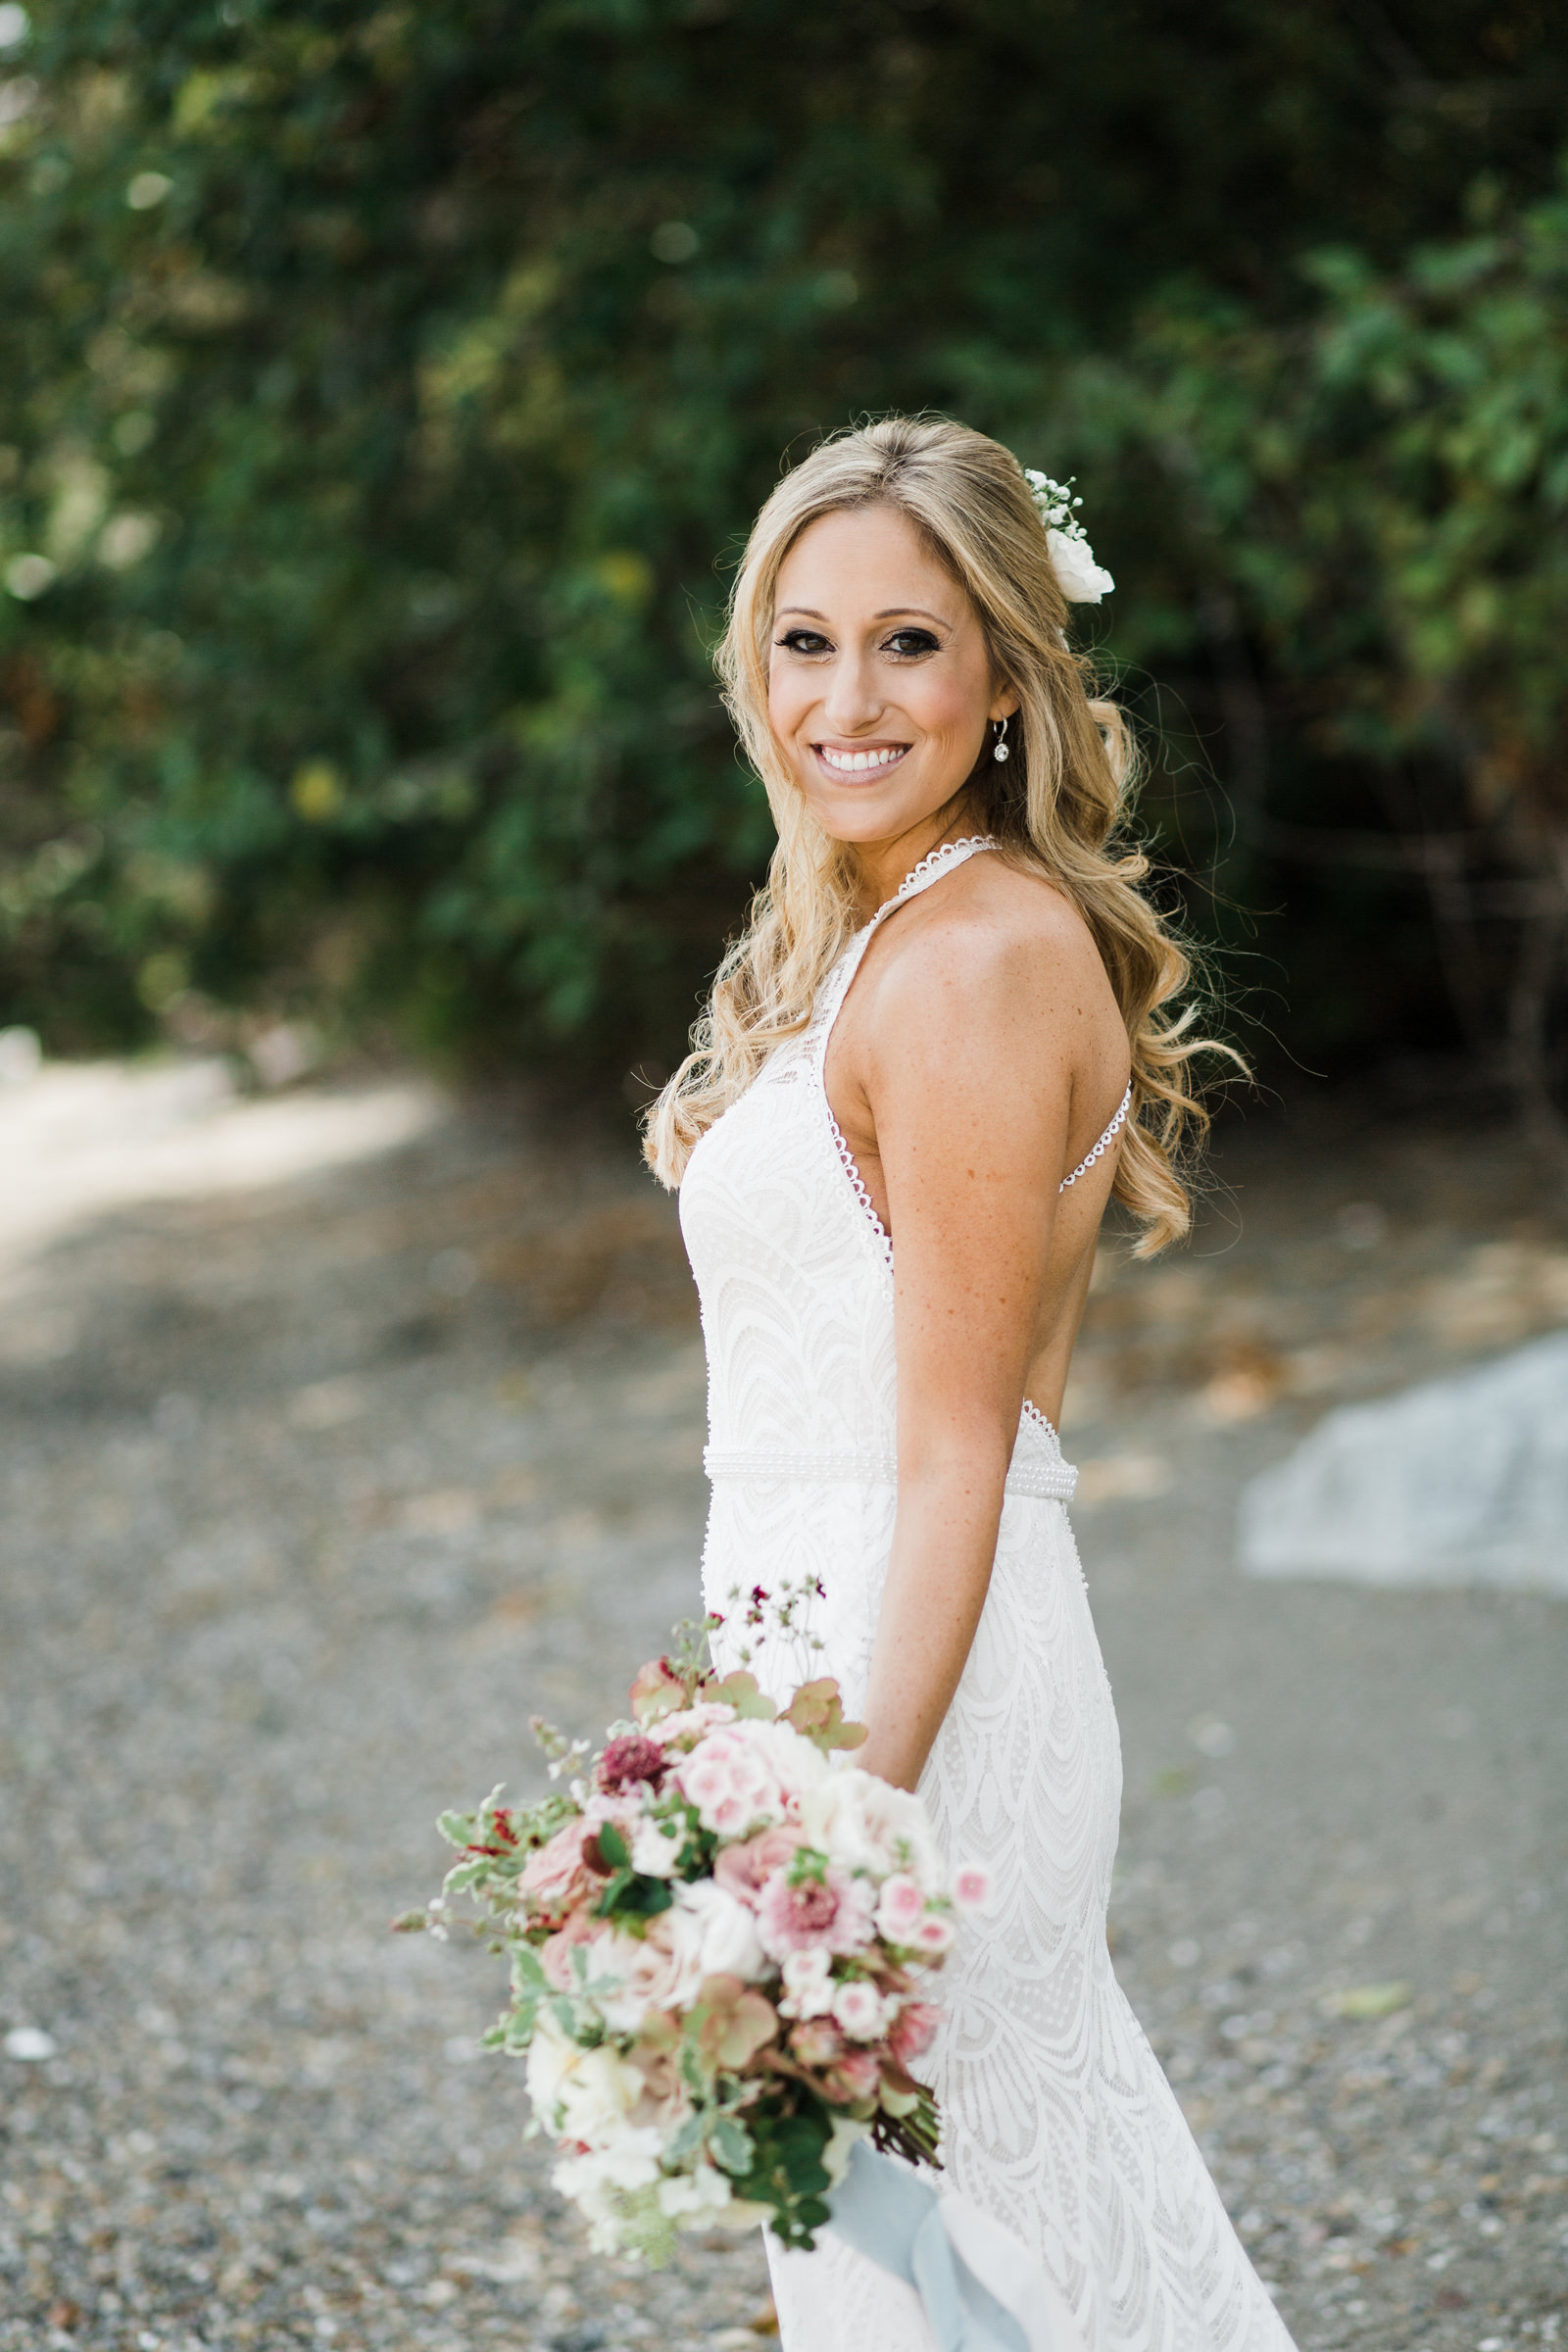 Bride with long blonde curls and pink rose bouquet - photo by Stephanie Cristalli Photography